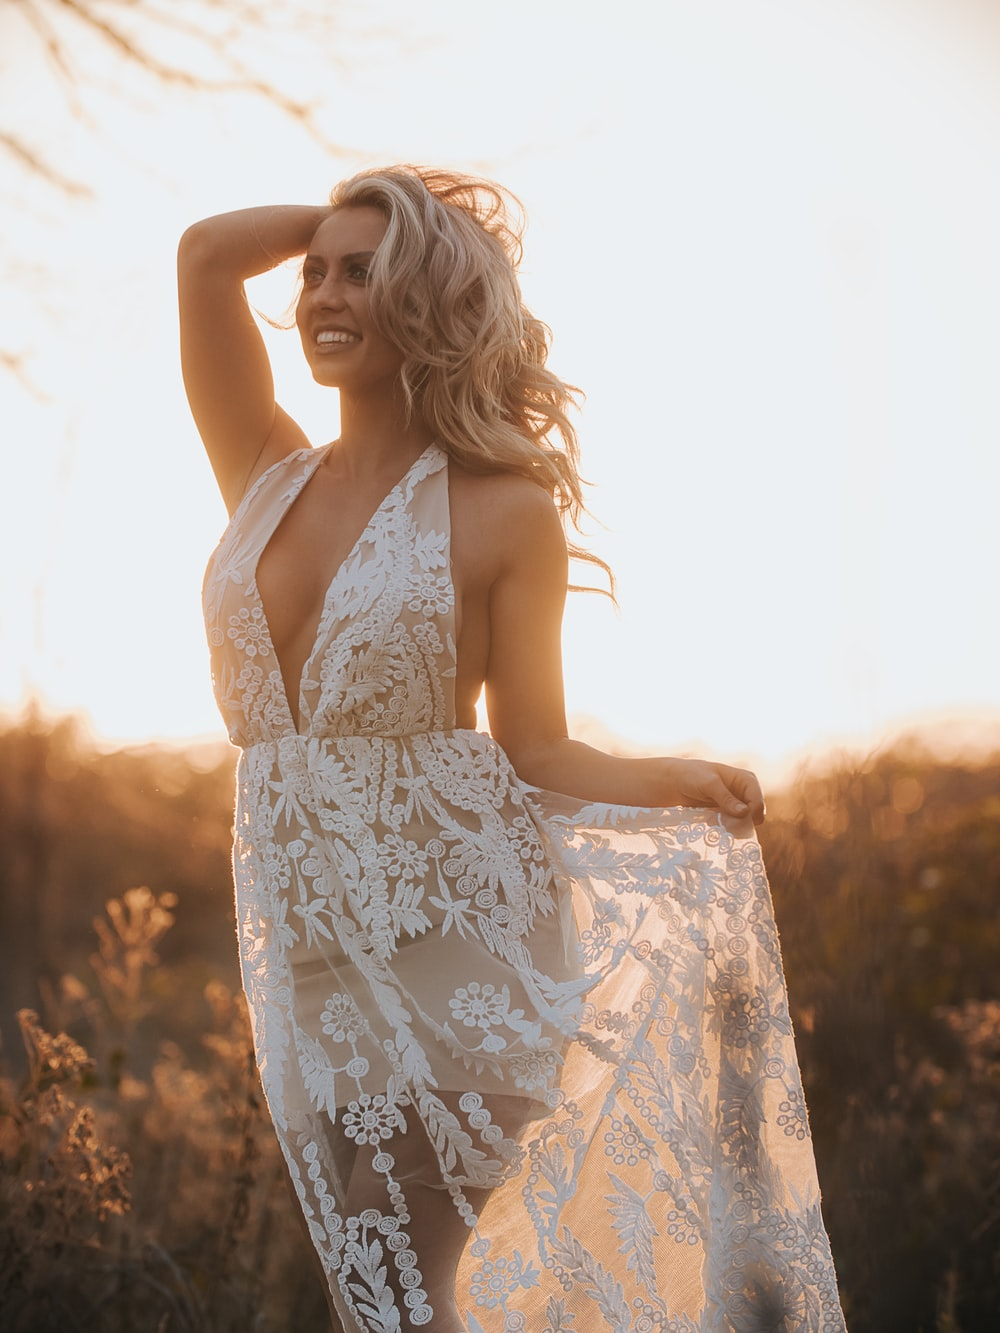 woman holding her dress and head near grass during golden hour